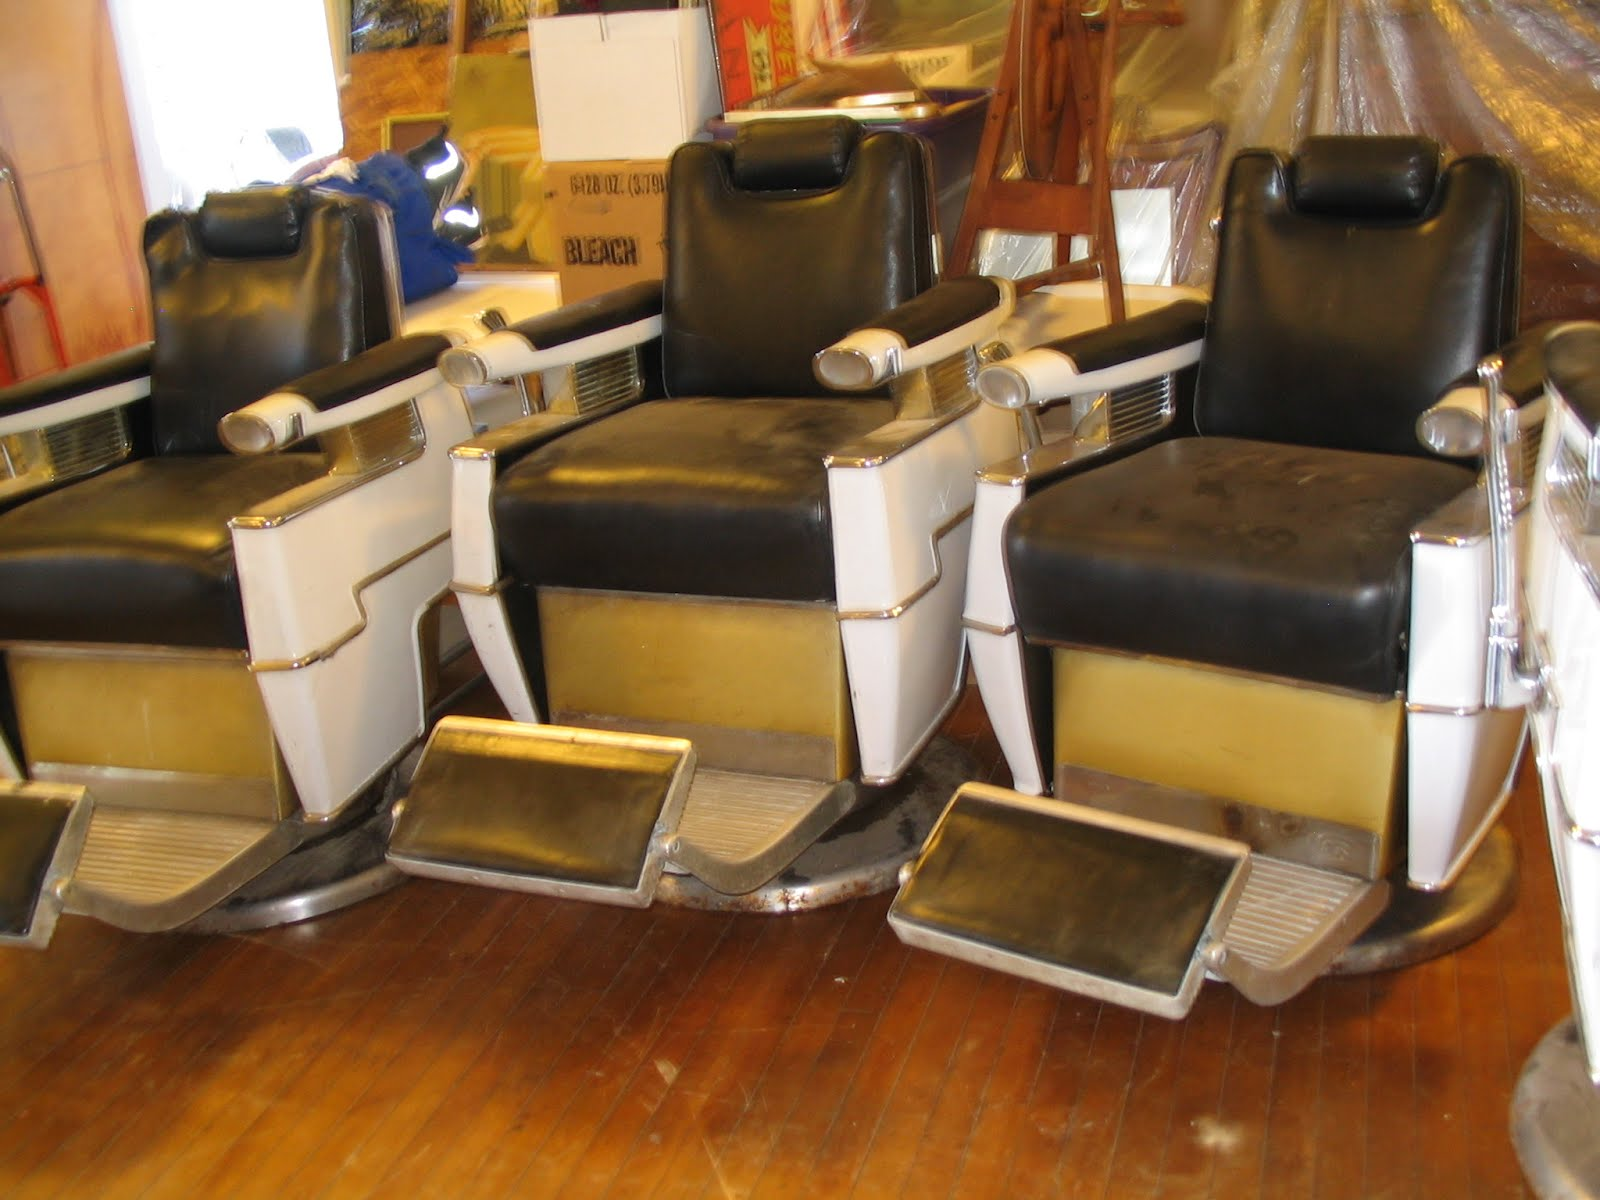 Antique barber chairs koken - 5 Vintage Belmont Barber Chairs Plus One